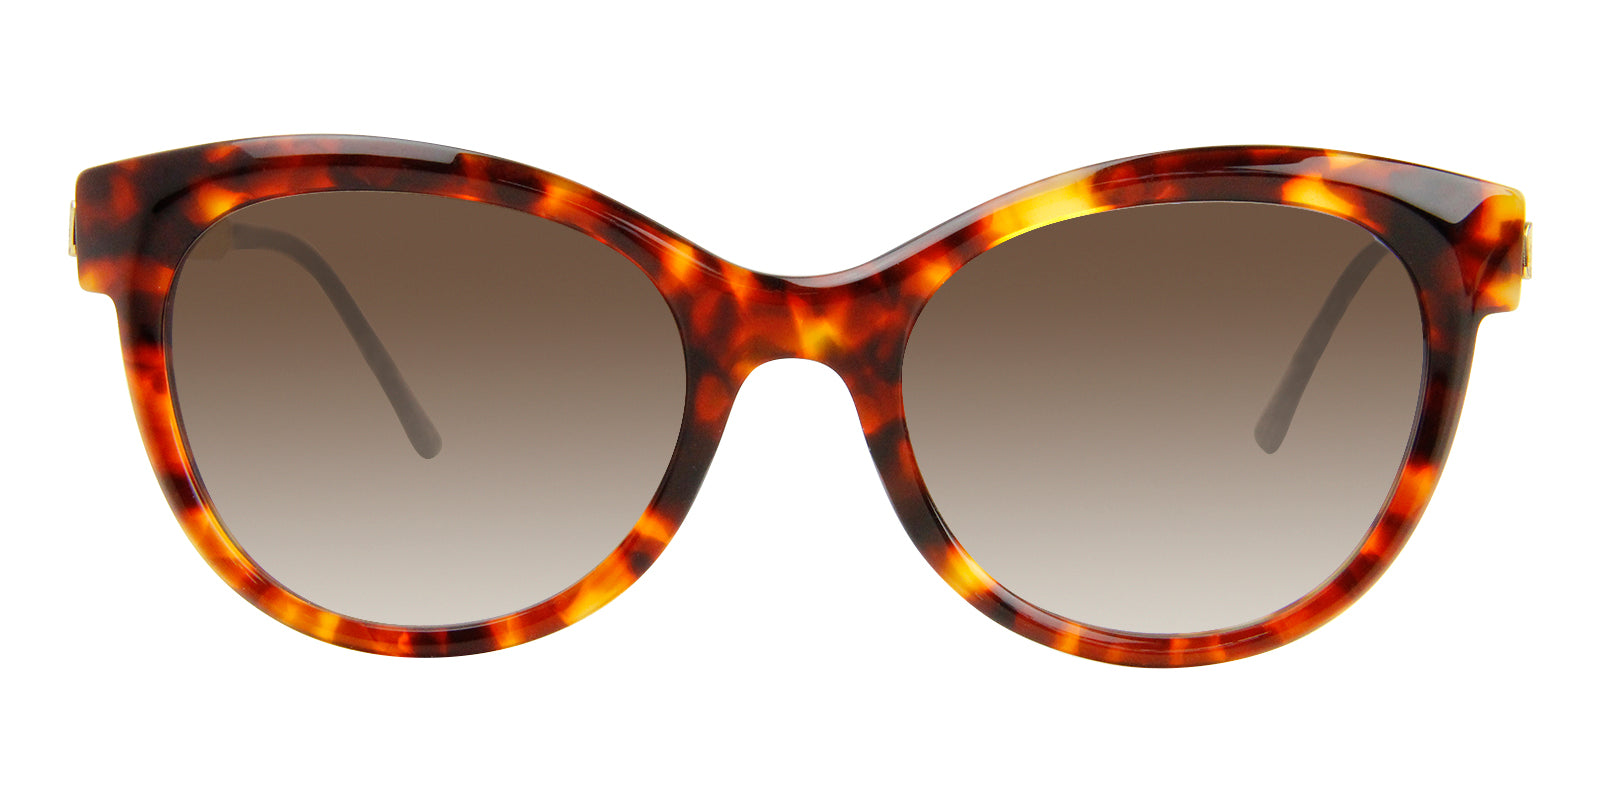 Thierry Lasry - Flirty Tortoise Cat-Eye Women Sunglasses - 53mm